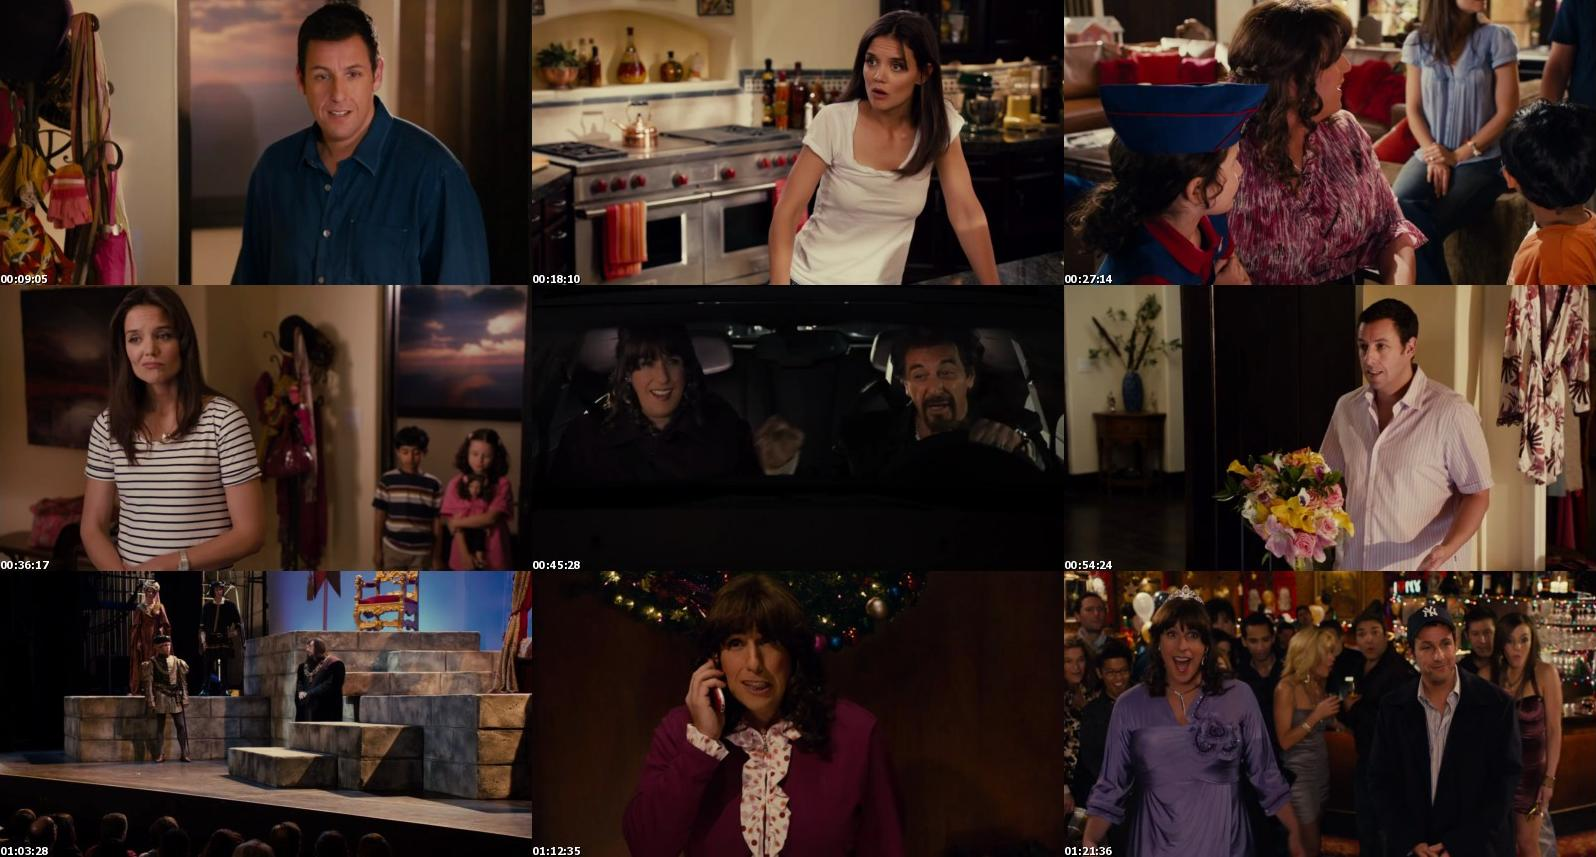 http://3.bp.blogspot.com/-T0sM_M0rh1U/Tz5UK7Z5M7I/AAAAAAAACNY/YLvRxirT6Kg/s1600/Jack+and+Jill+(2011)+BRRip+720p+Screen.jpg